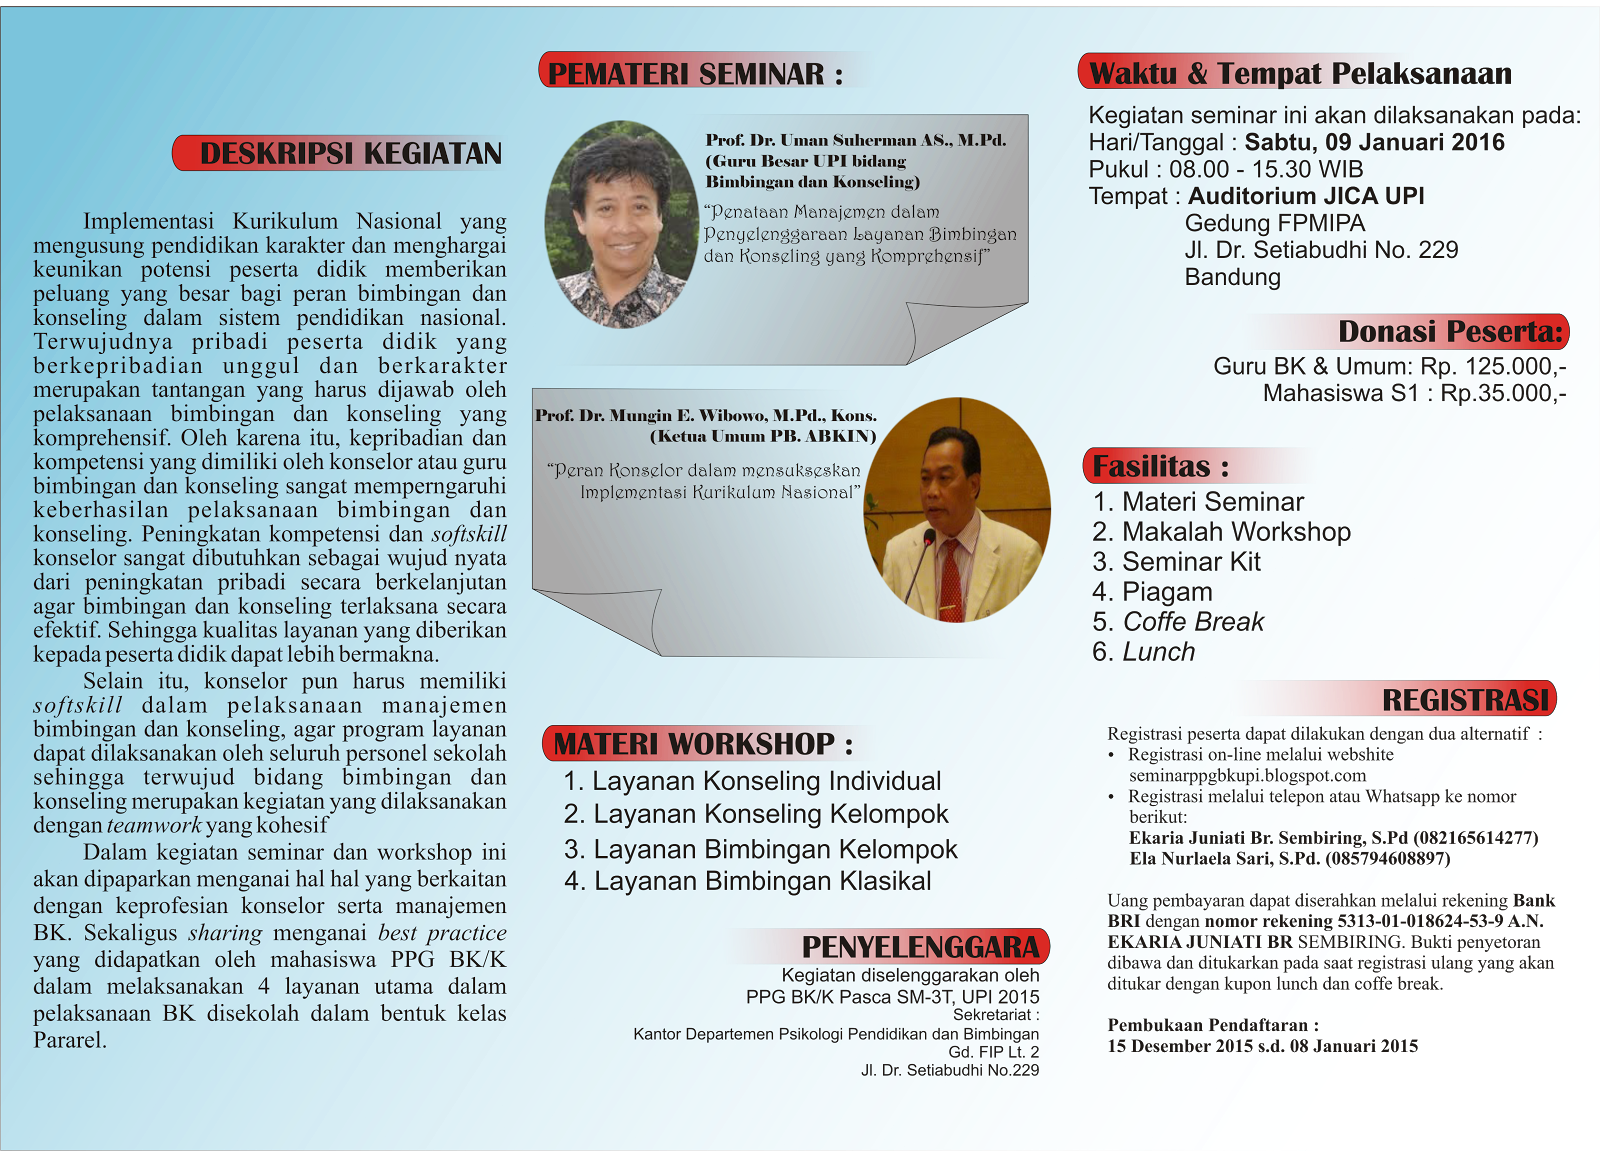 Seminar dan Workshop BK